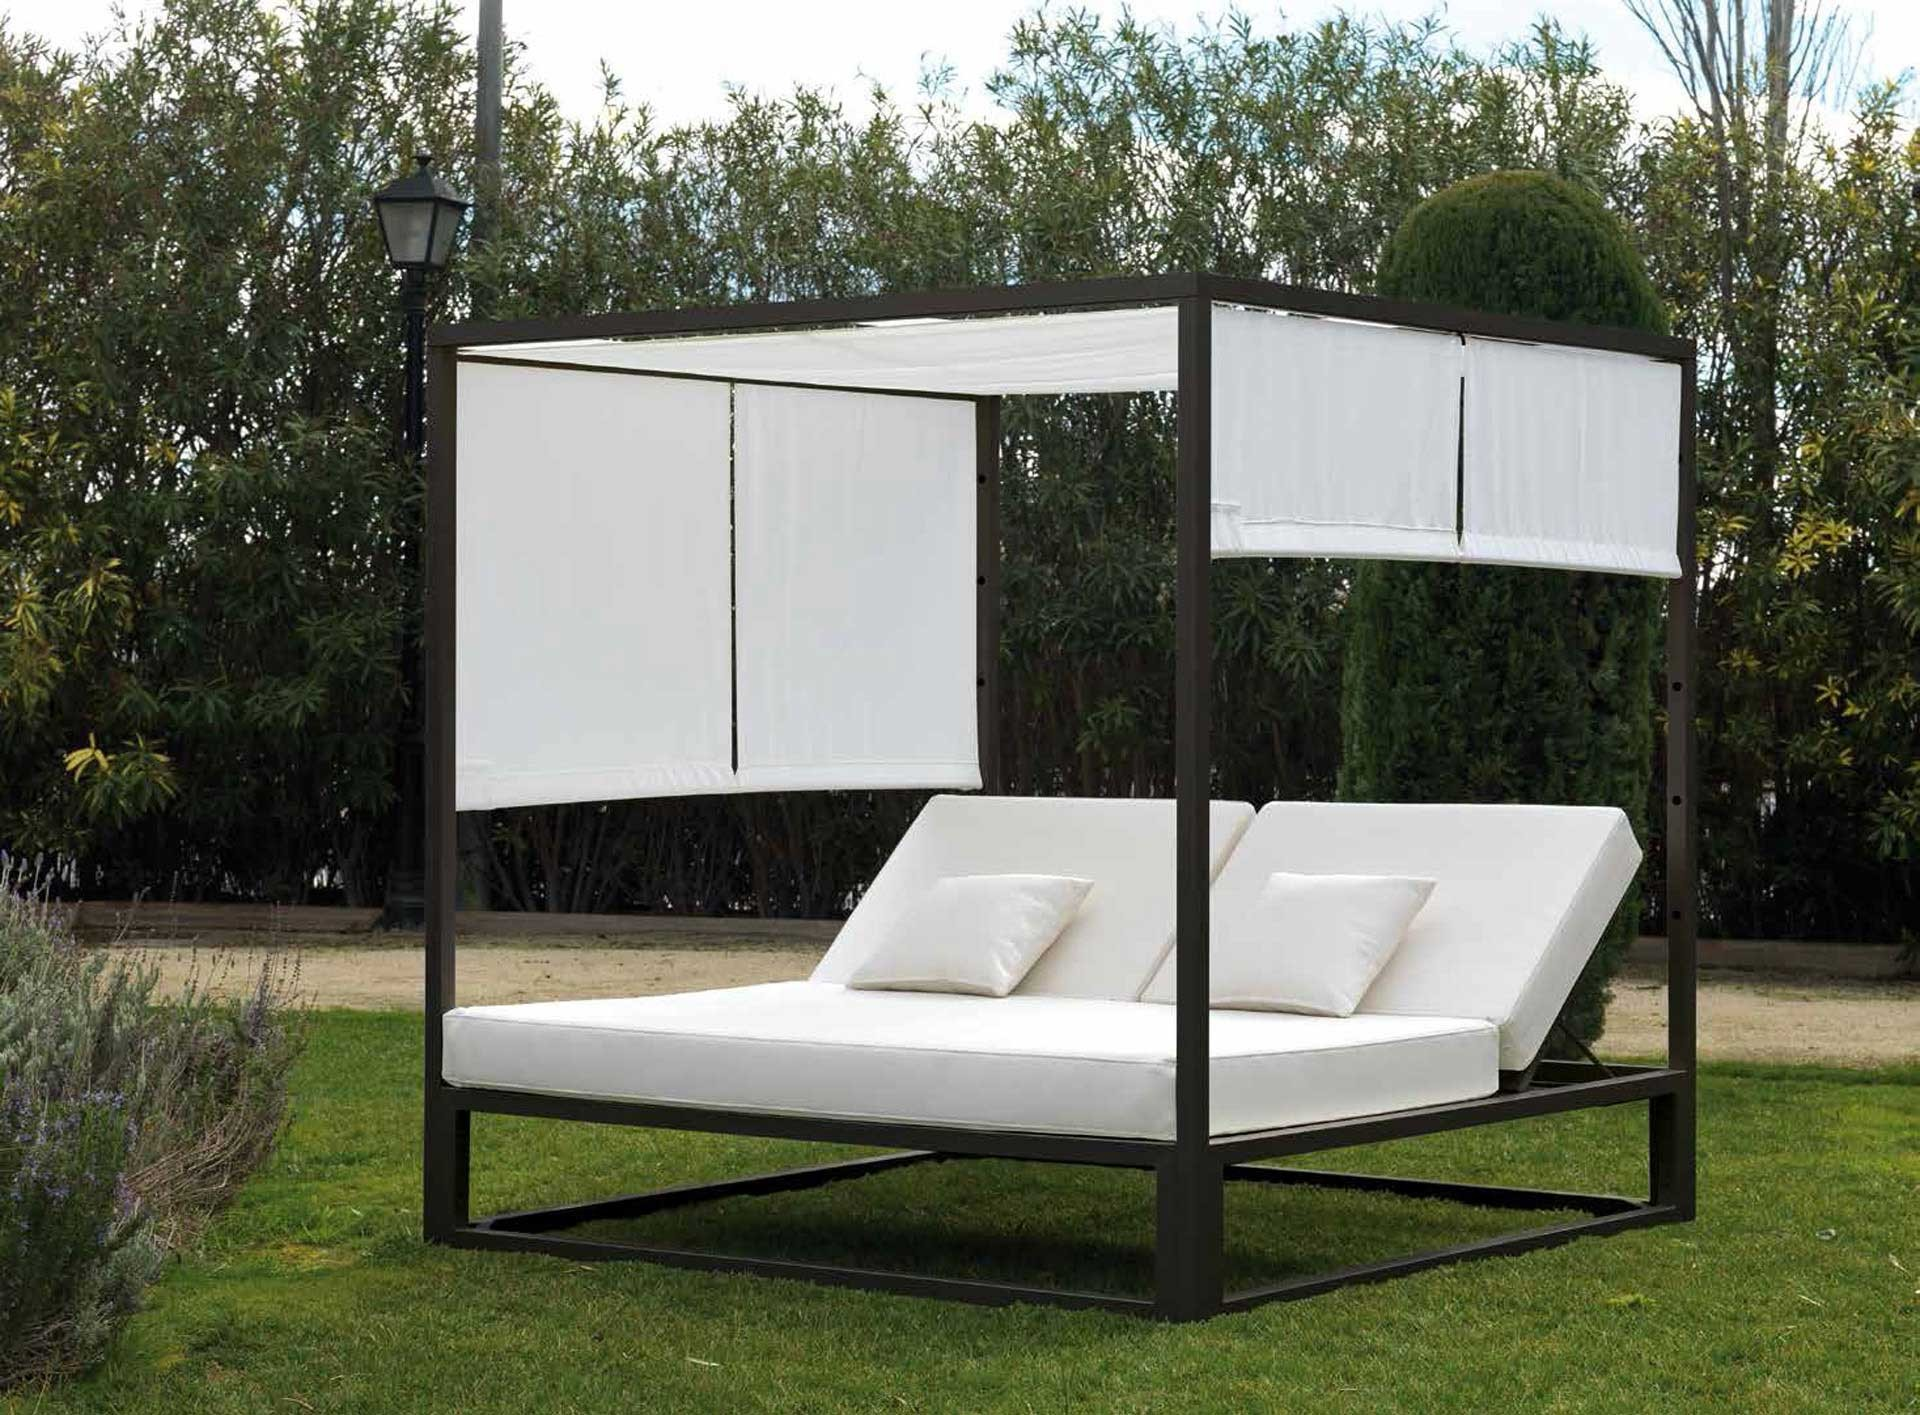 Camas balinesas c mo crear un rinc n chill out en tu - Muebles chill out exterior ...